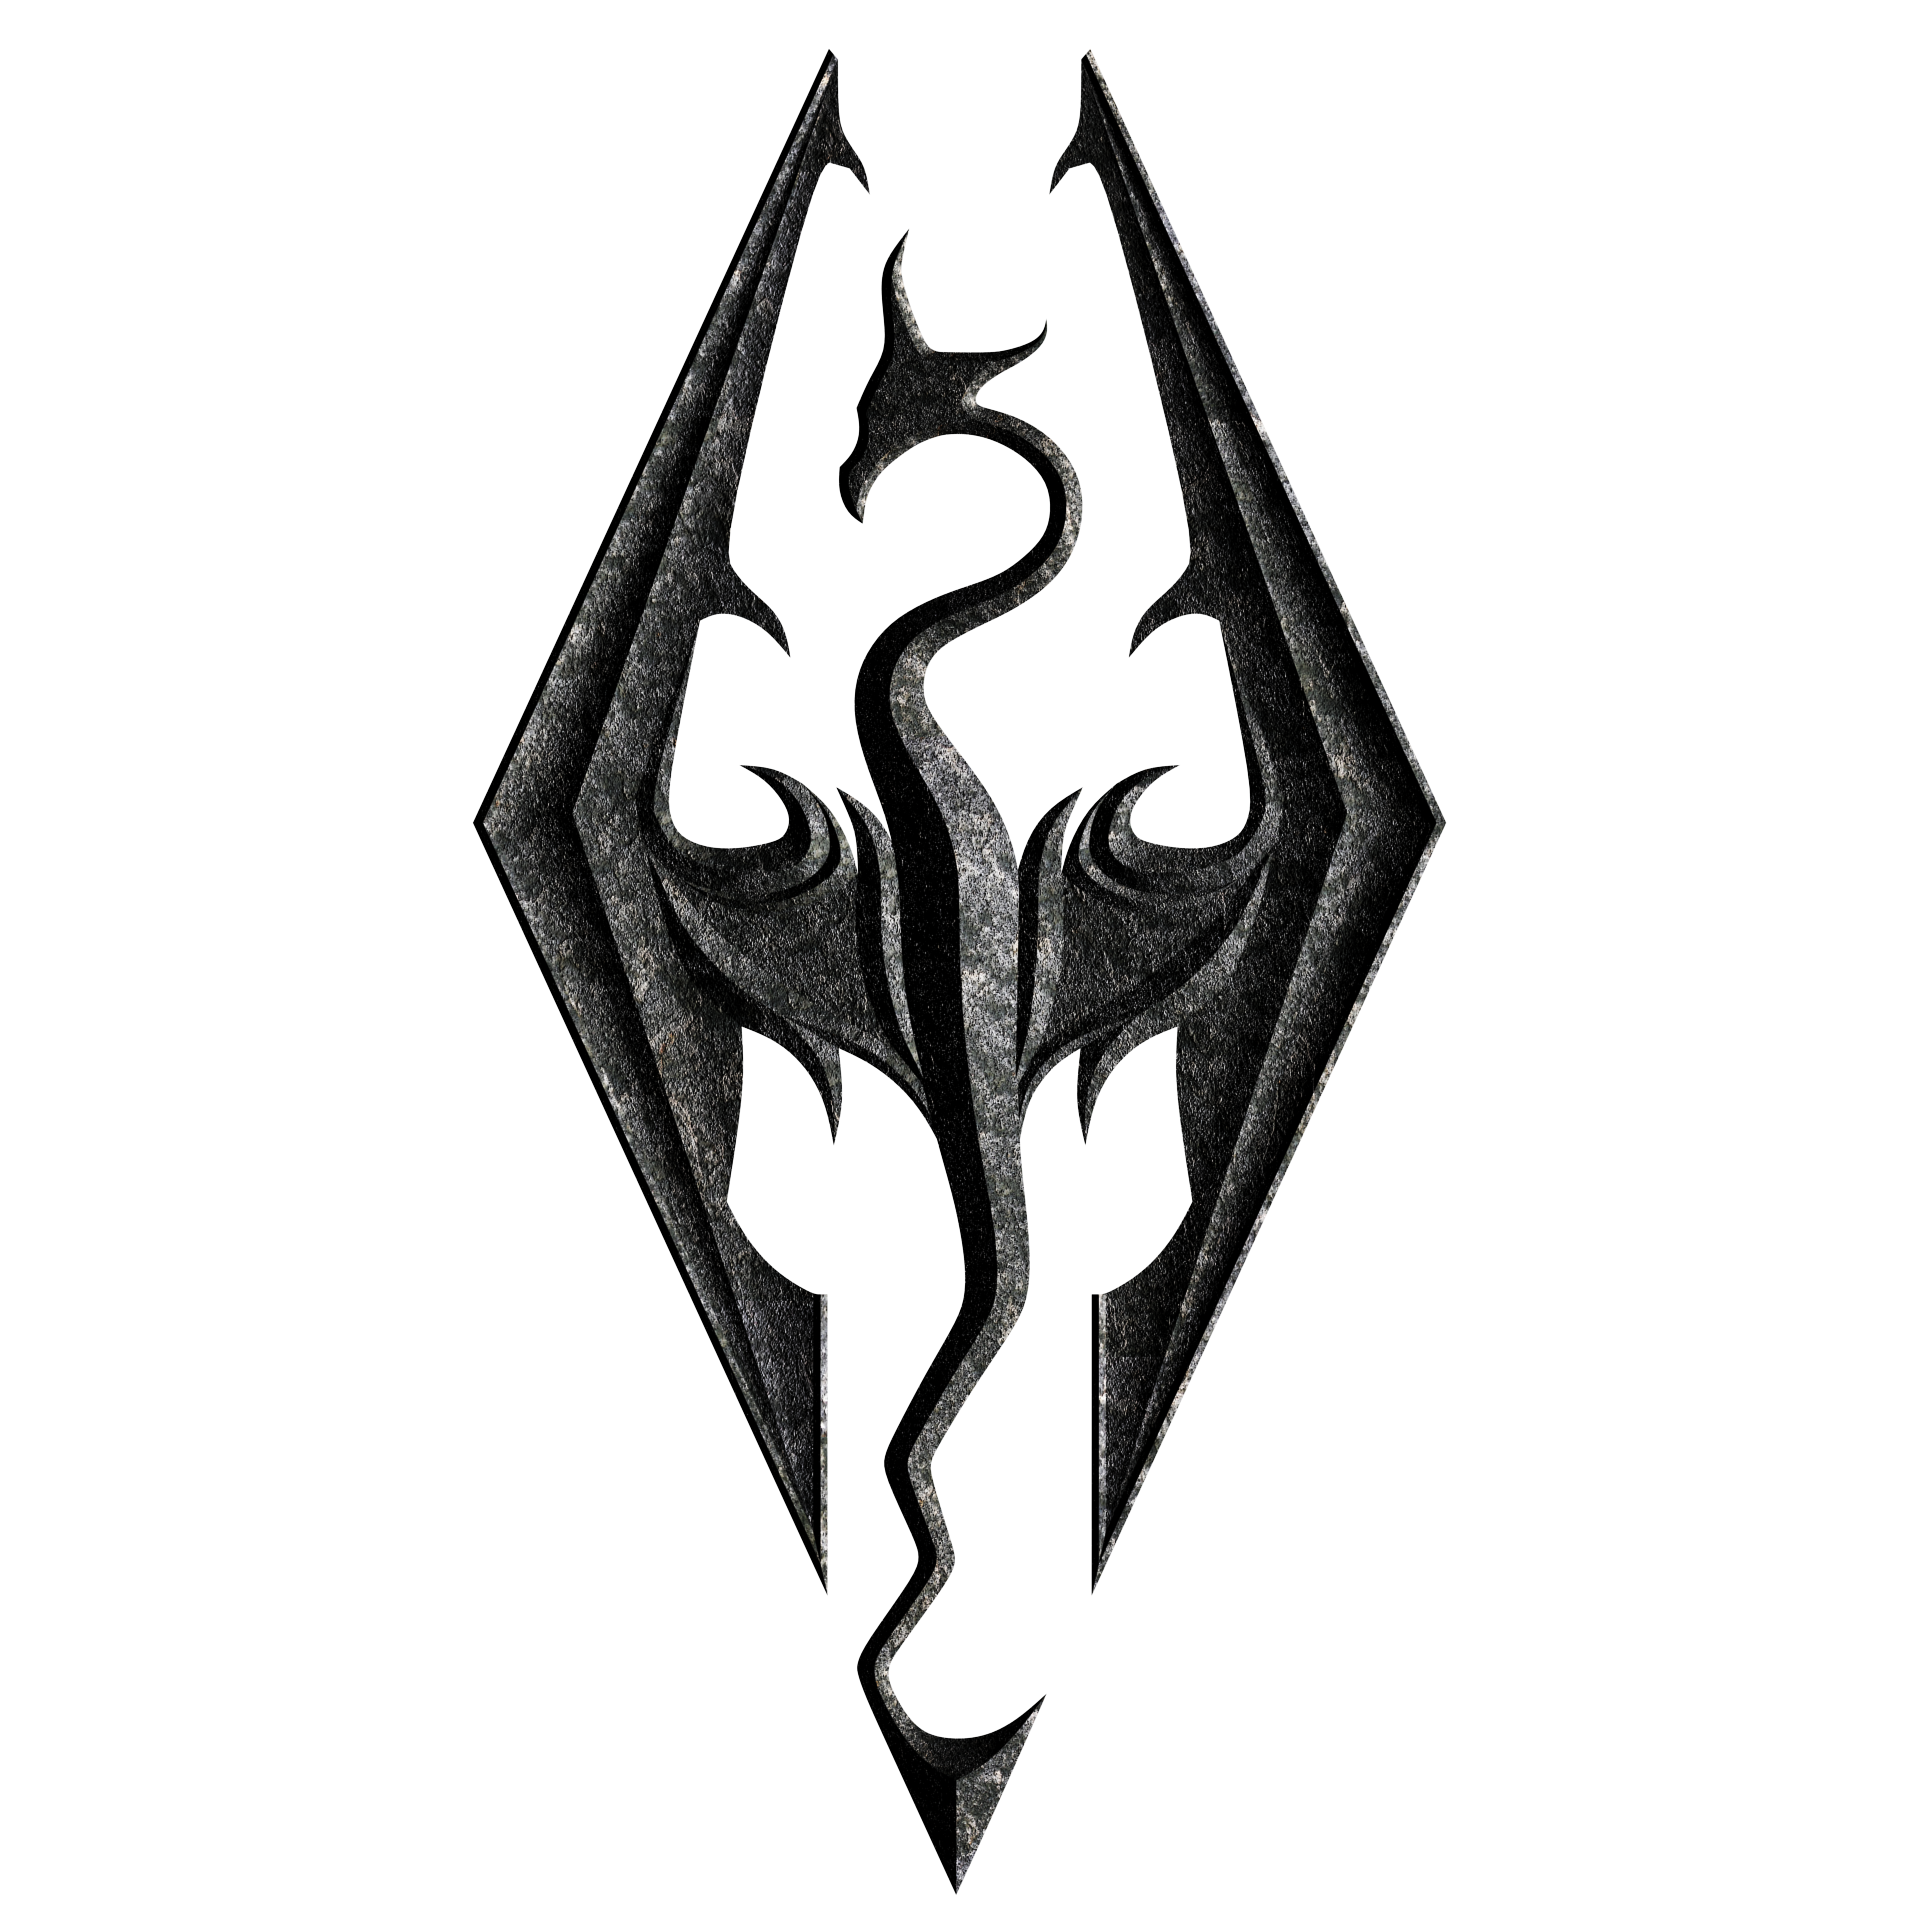 Skyrim logo png. Symbol meaning history and